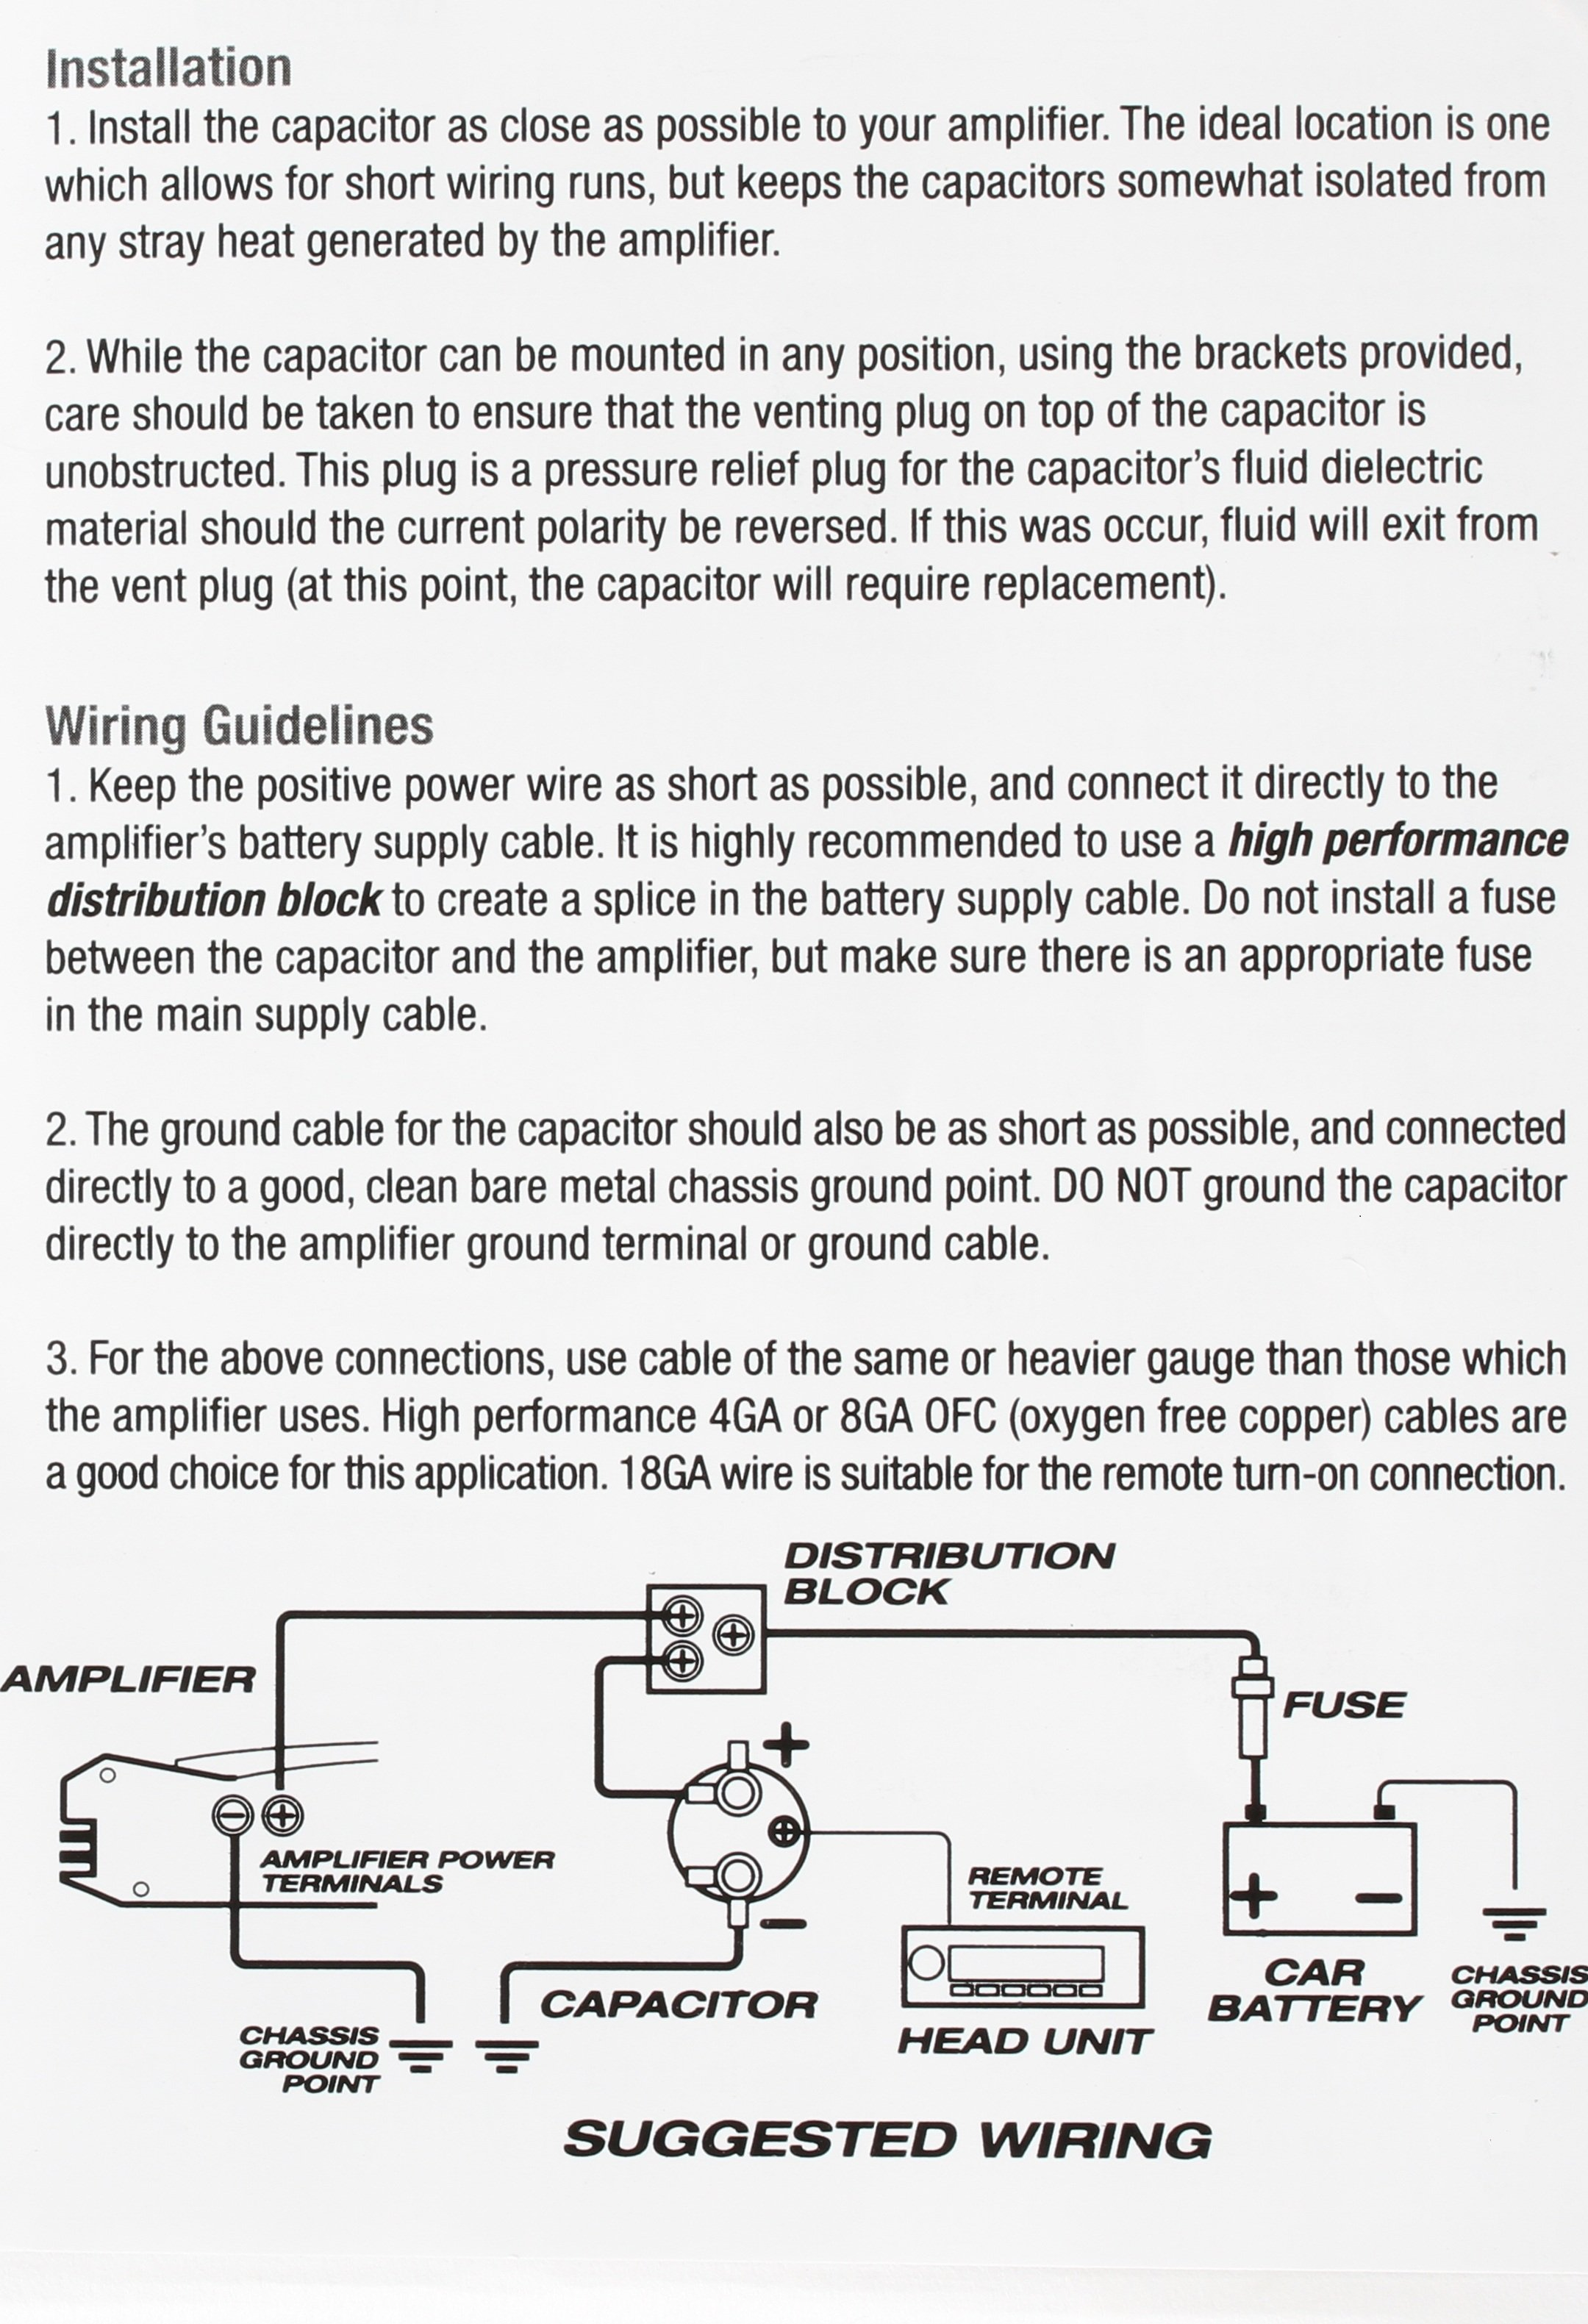 Capacitor Wiring Diagram 2 Subs One in addition 1145657 3811703 furthermore Nug Scosche 500k Micro Farad Capacitor Manual moreover 72917 2 4 Ohm Jl 12w3v3s 500 1   Wiring Question likewise Sonic Wire Diagram. on scosche 500k capacitor install